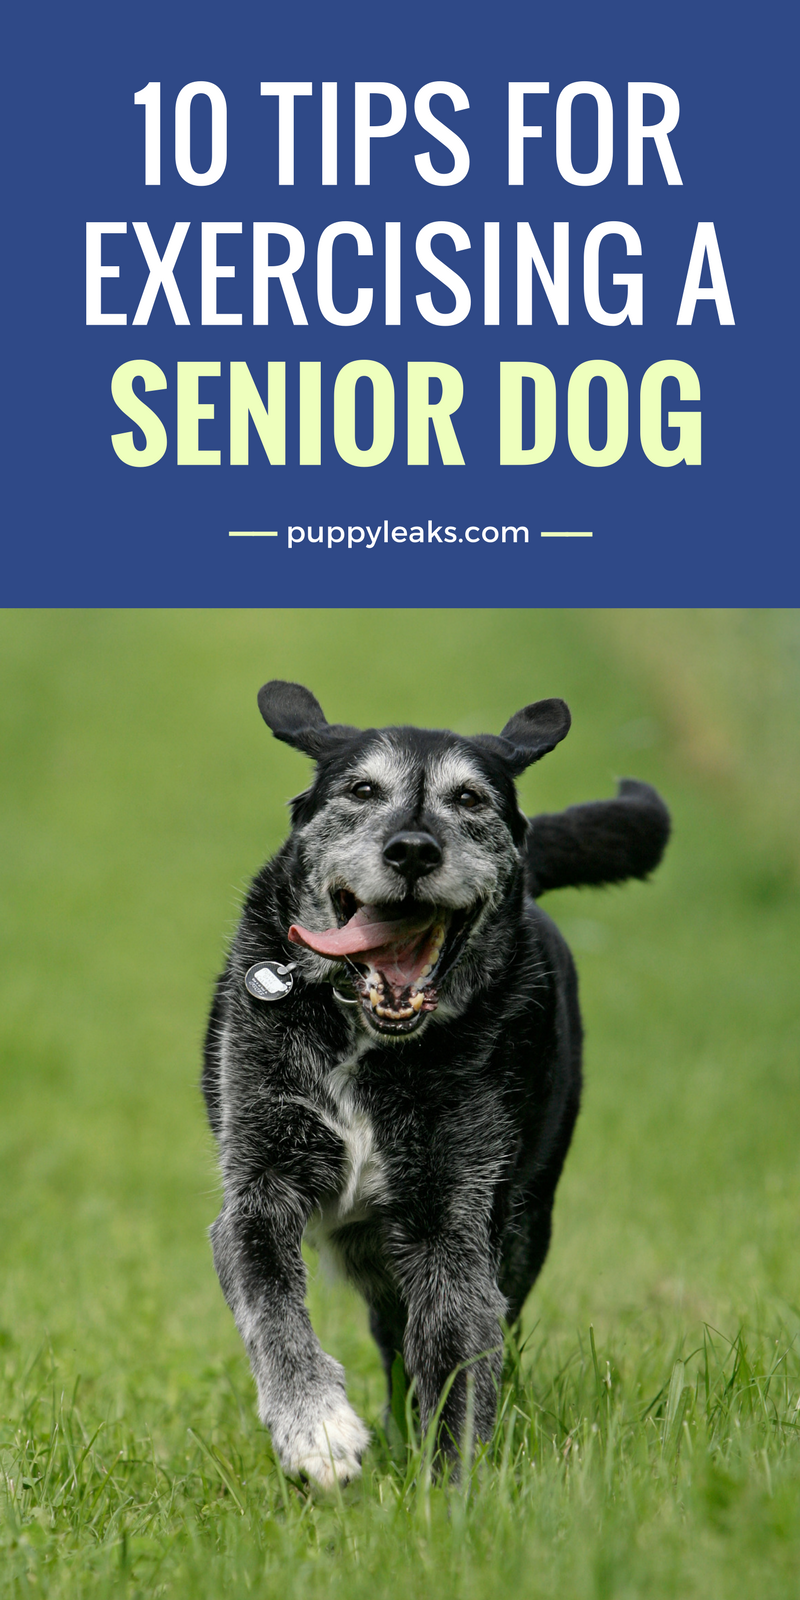 10 Tips For Exercising a Senior Dog